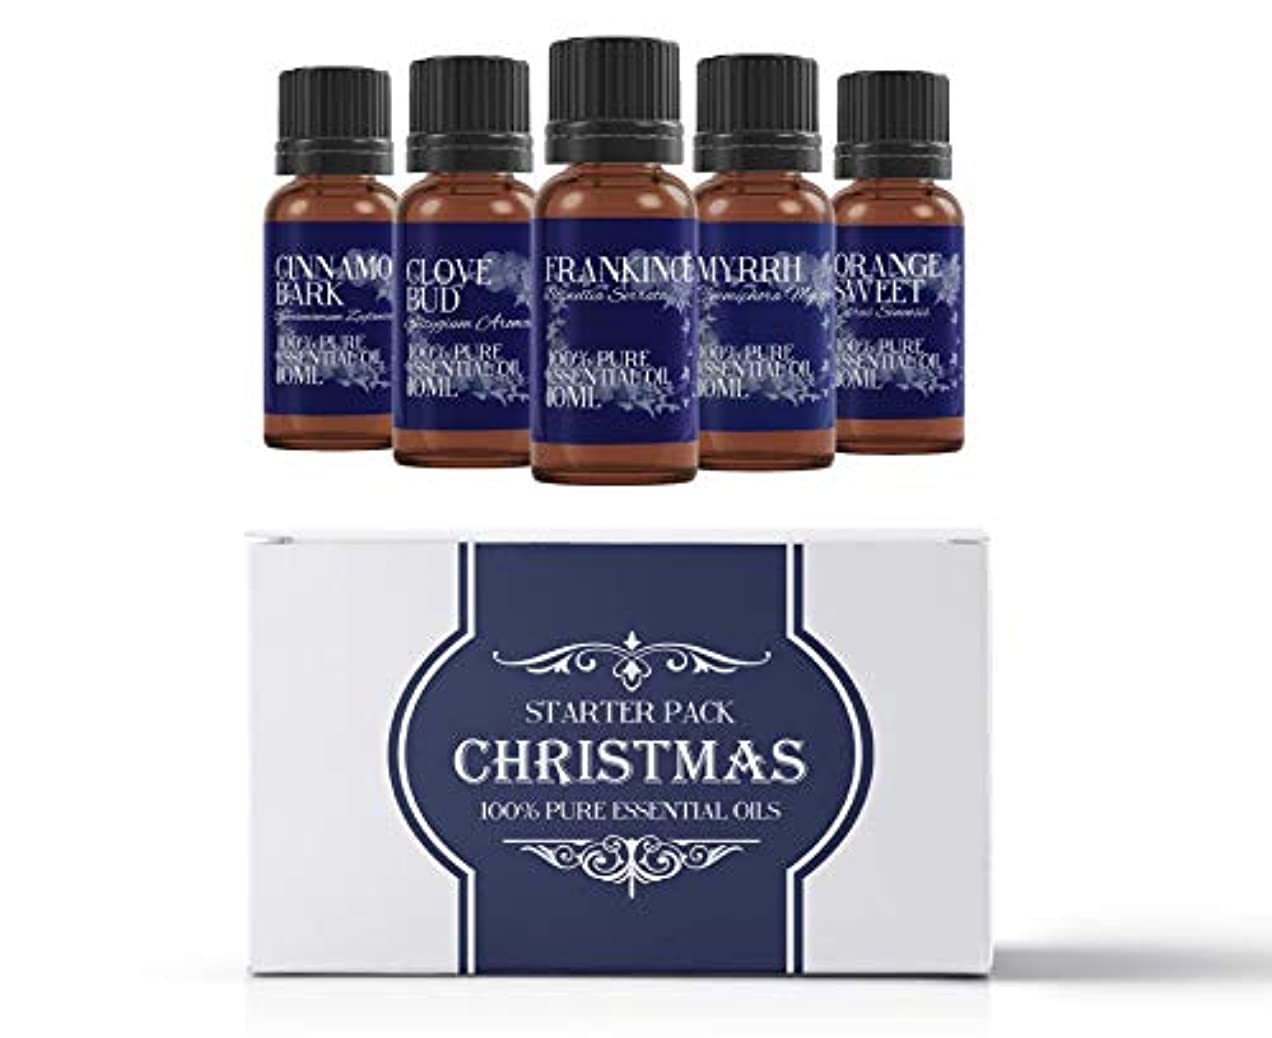 Mystic Moments | Essential Oil Starter Pack - Christmas Oils - 5 x 10ml - 100% Pure